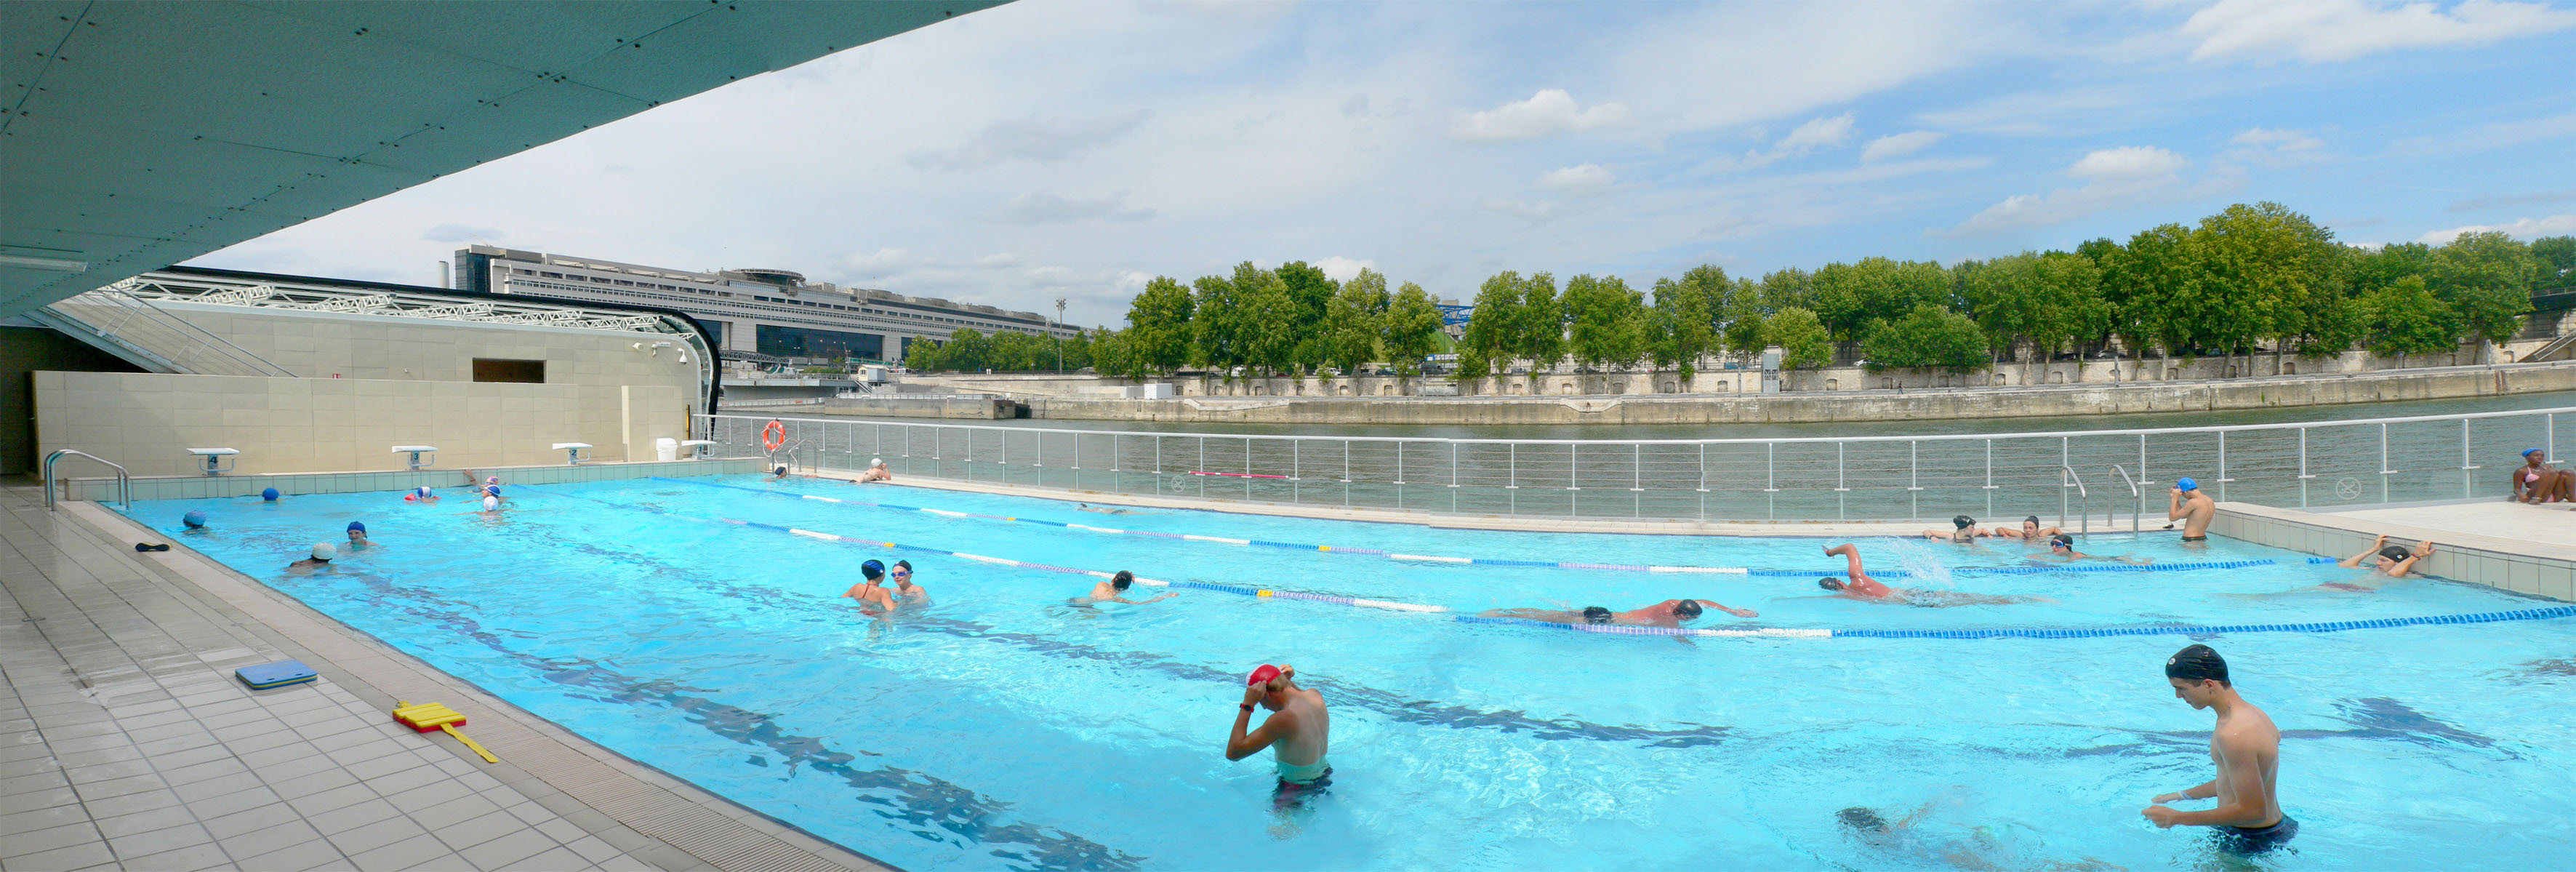 Piscine jos phine baker for Aquagym piscine paris